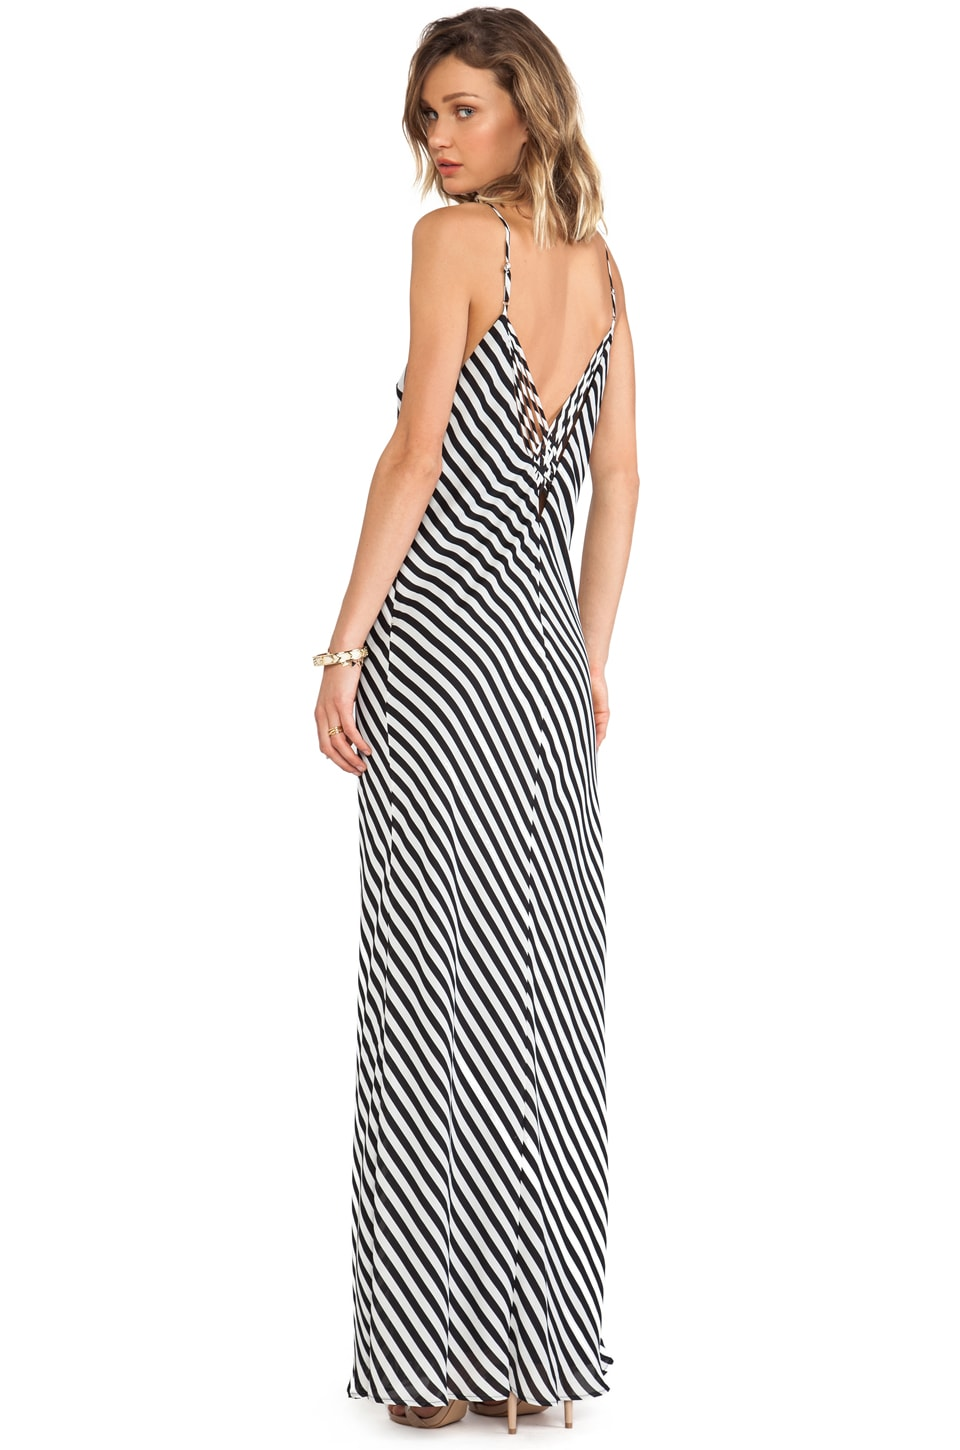 Greylin Taylor Stripe Maxi Dress in Black & White